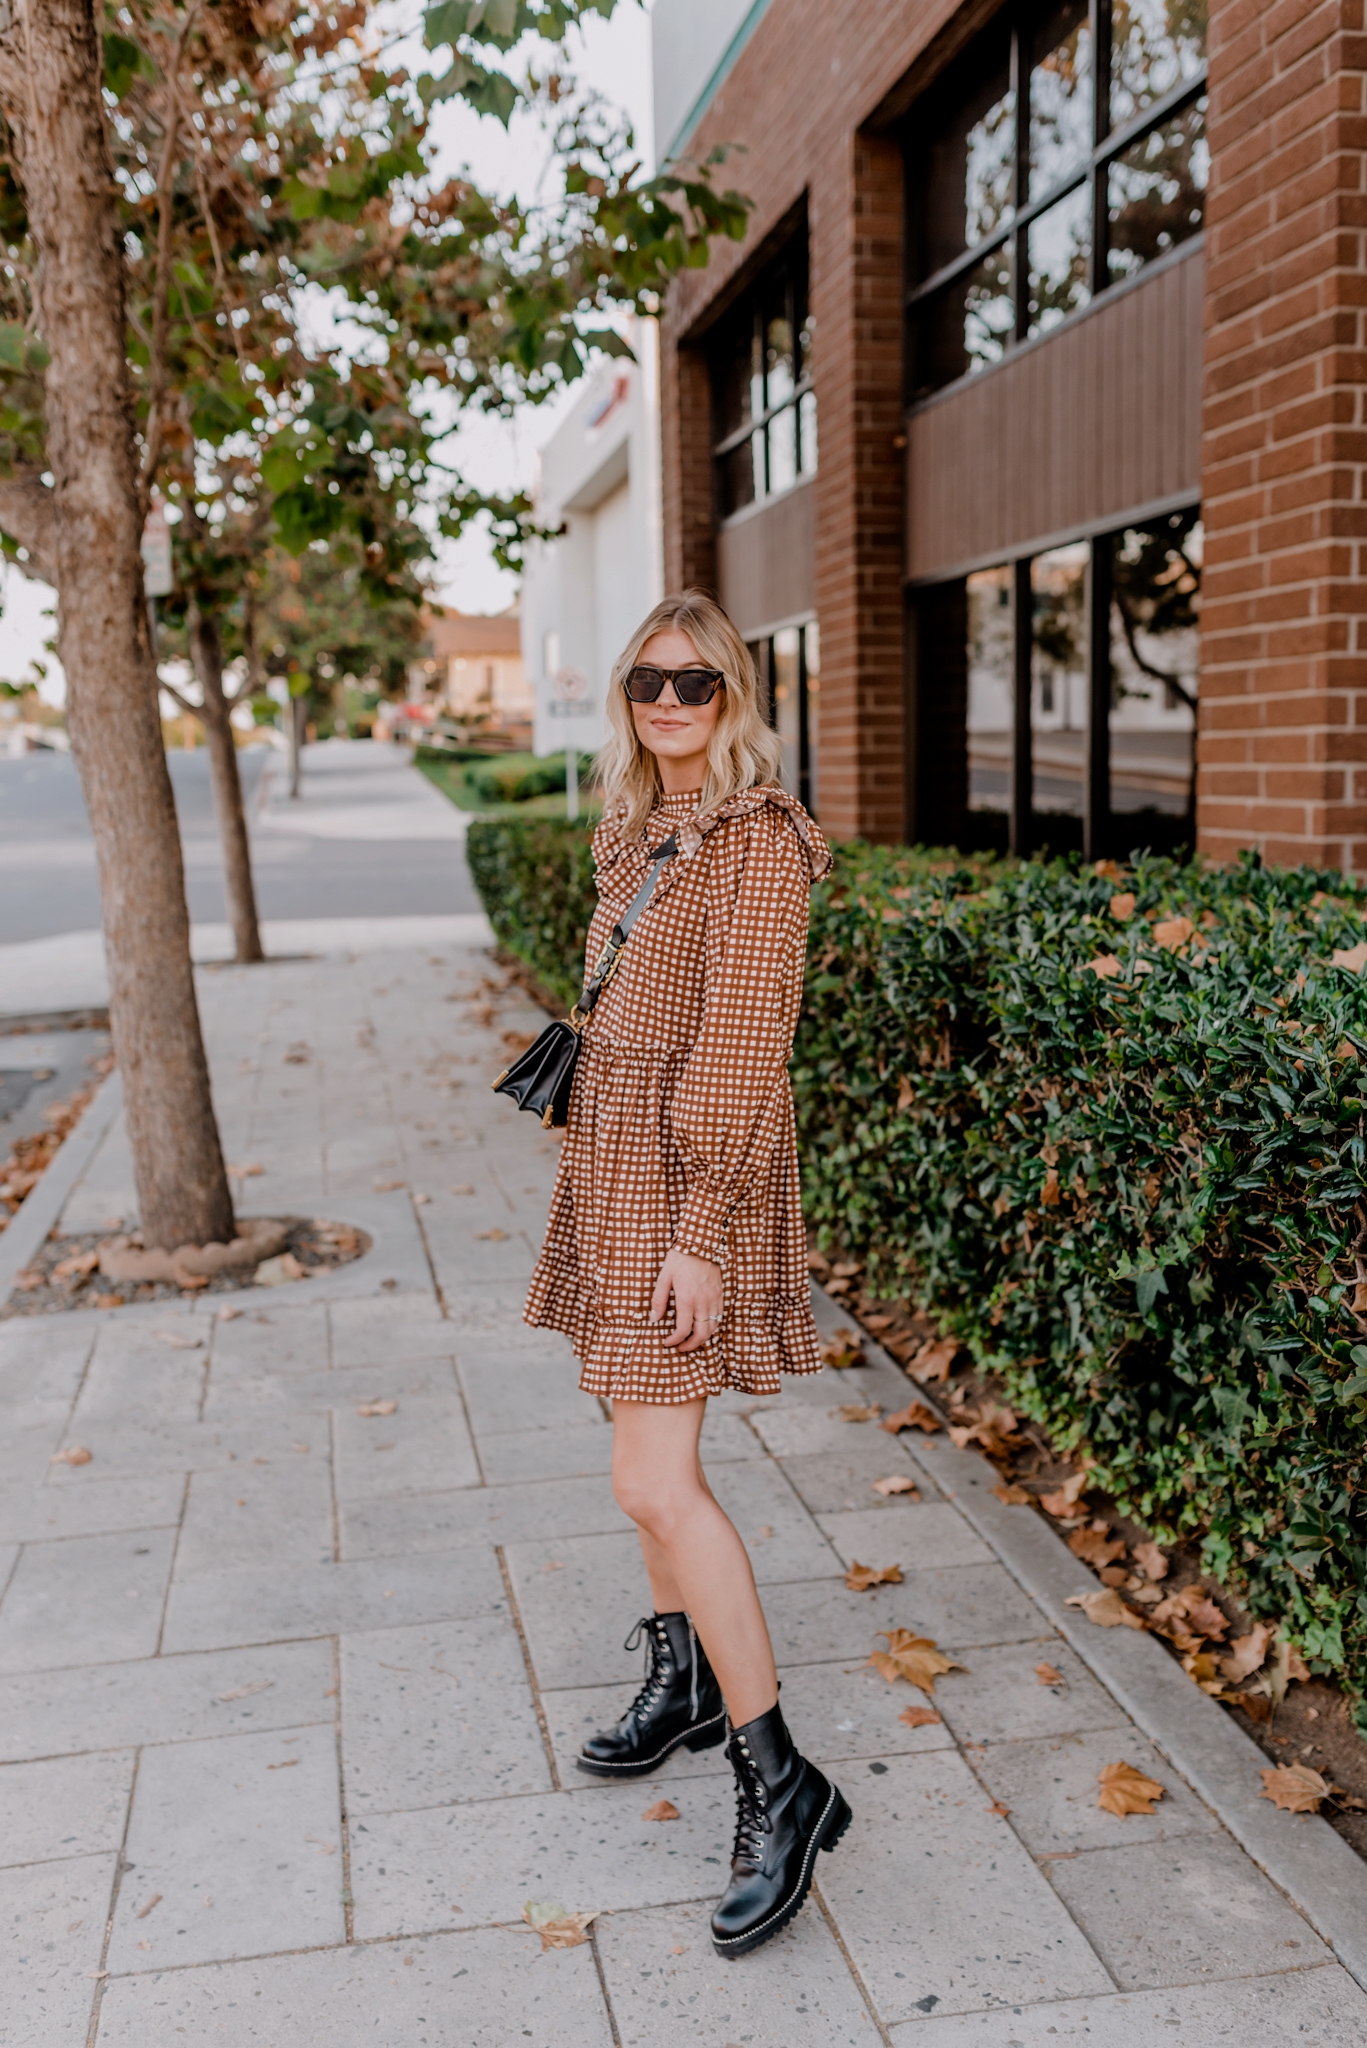 Top 10 Best Women's Combat Boots - Navy Grace - Camilla Thurman |Combat Boots by popular San Diego fashion blog, Navy Grace: image of a woman walking outside and wearing a Anthropologie Penny Gingham Mini Dress, Bloomingdales AQUA Women's Jax Combat Boots, Amazon Mosanana Square Cateye Sunglasses, and carrying a Prada Cashier bag.